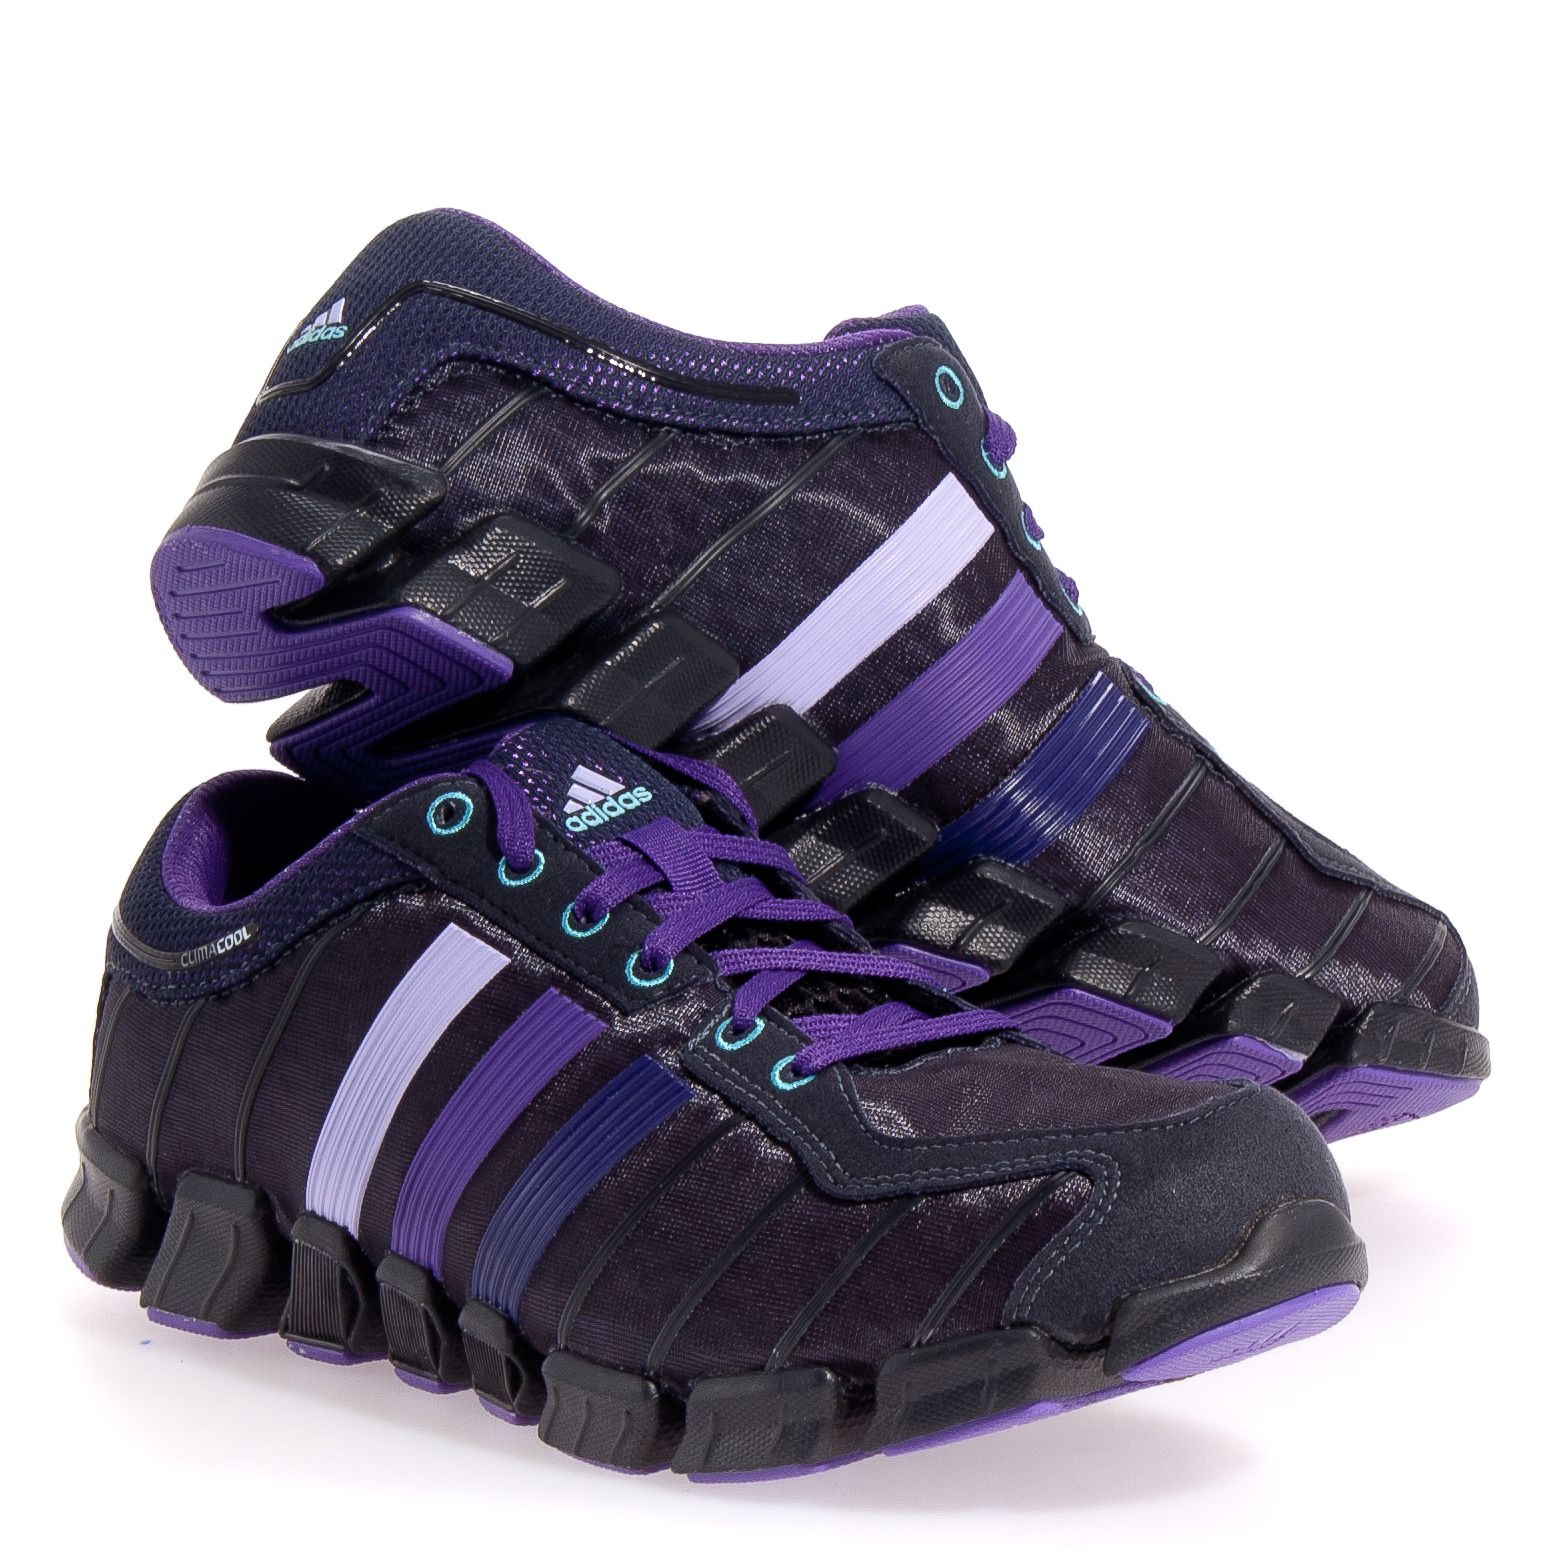 detailed look 0ebfb c94f6 Adidas Climacool Ride W Women s Running Shoes  Black 6.5